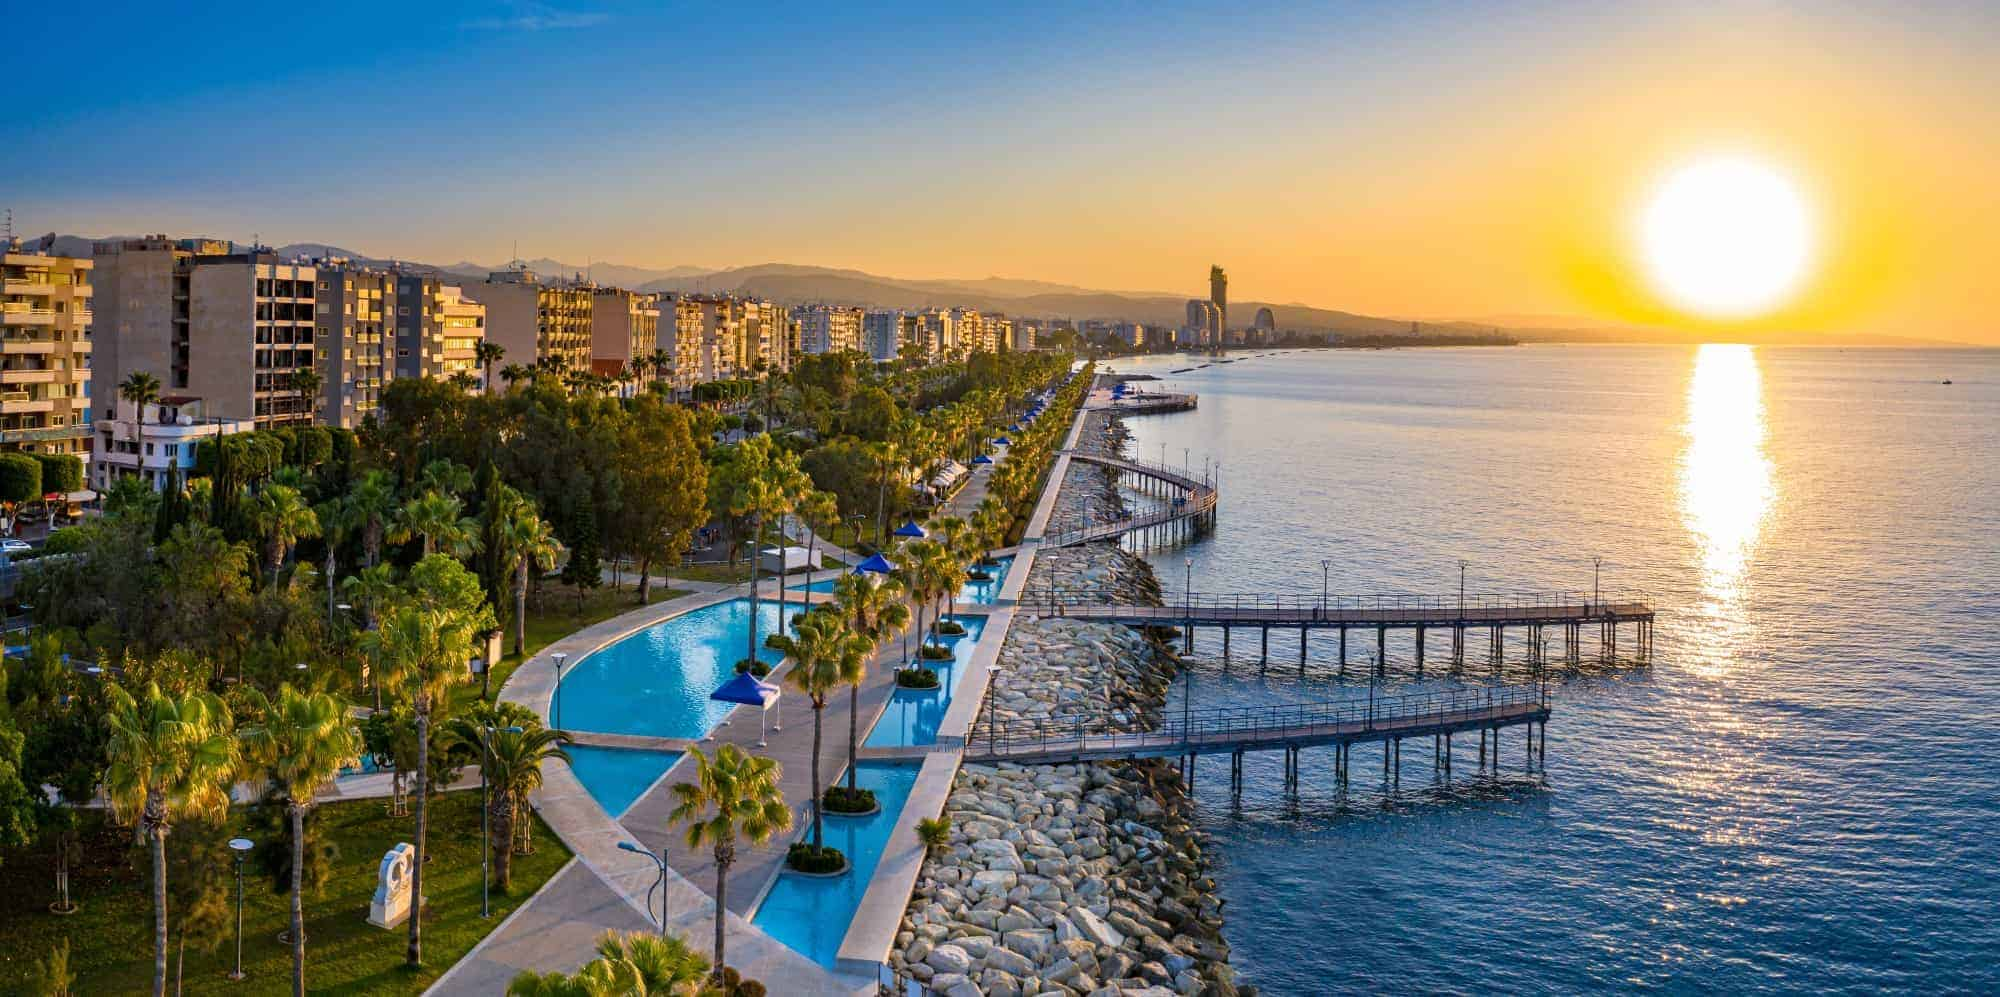 Best places to retire: Cyprus